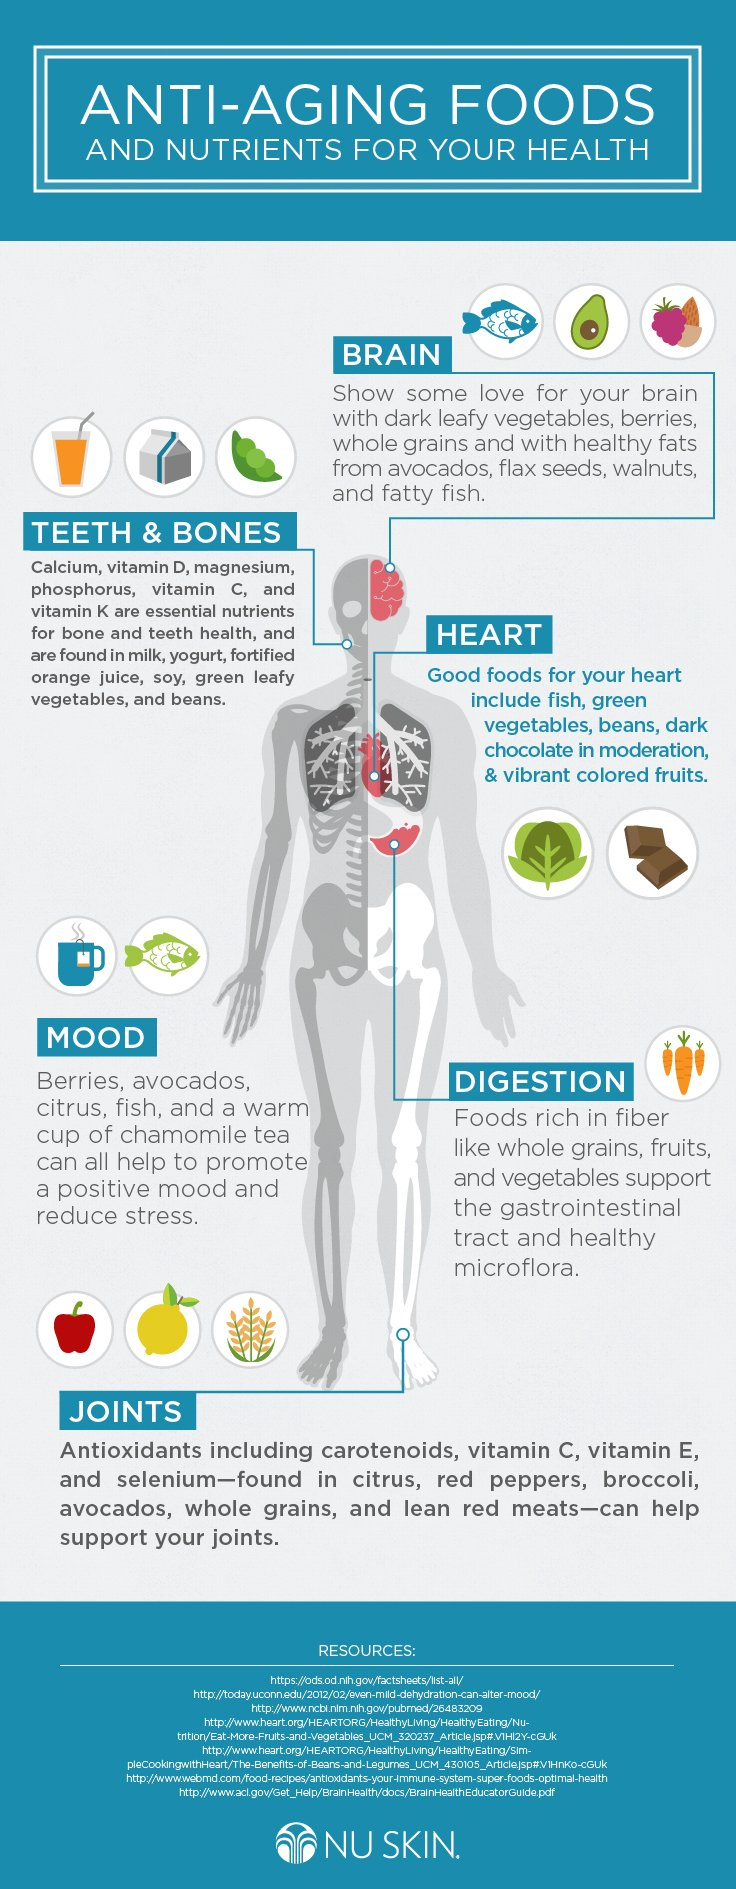 Anti Aging Foods and Nutrients for Your Health